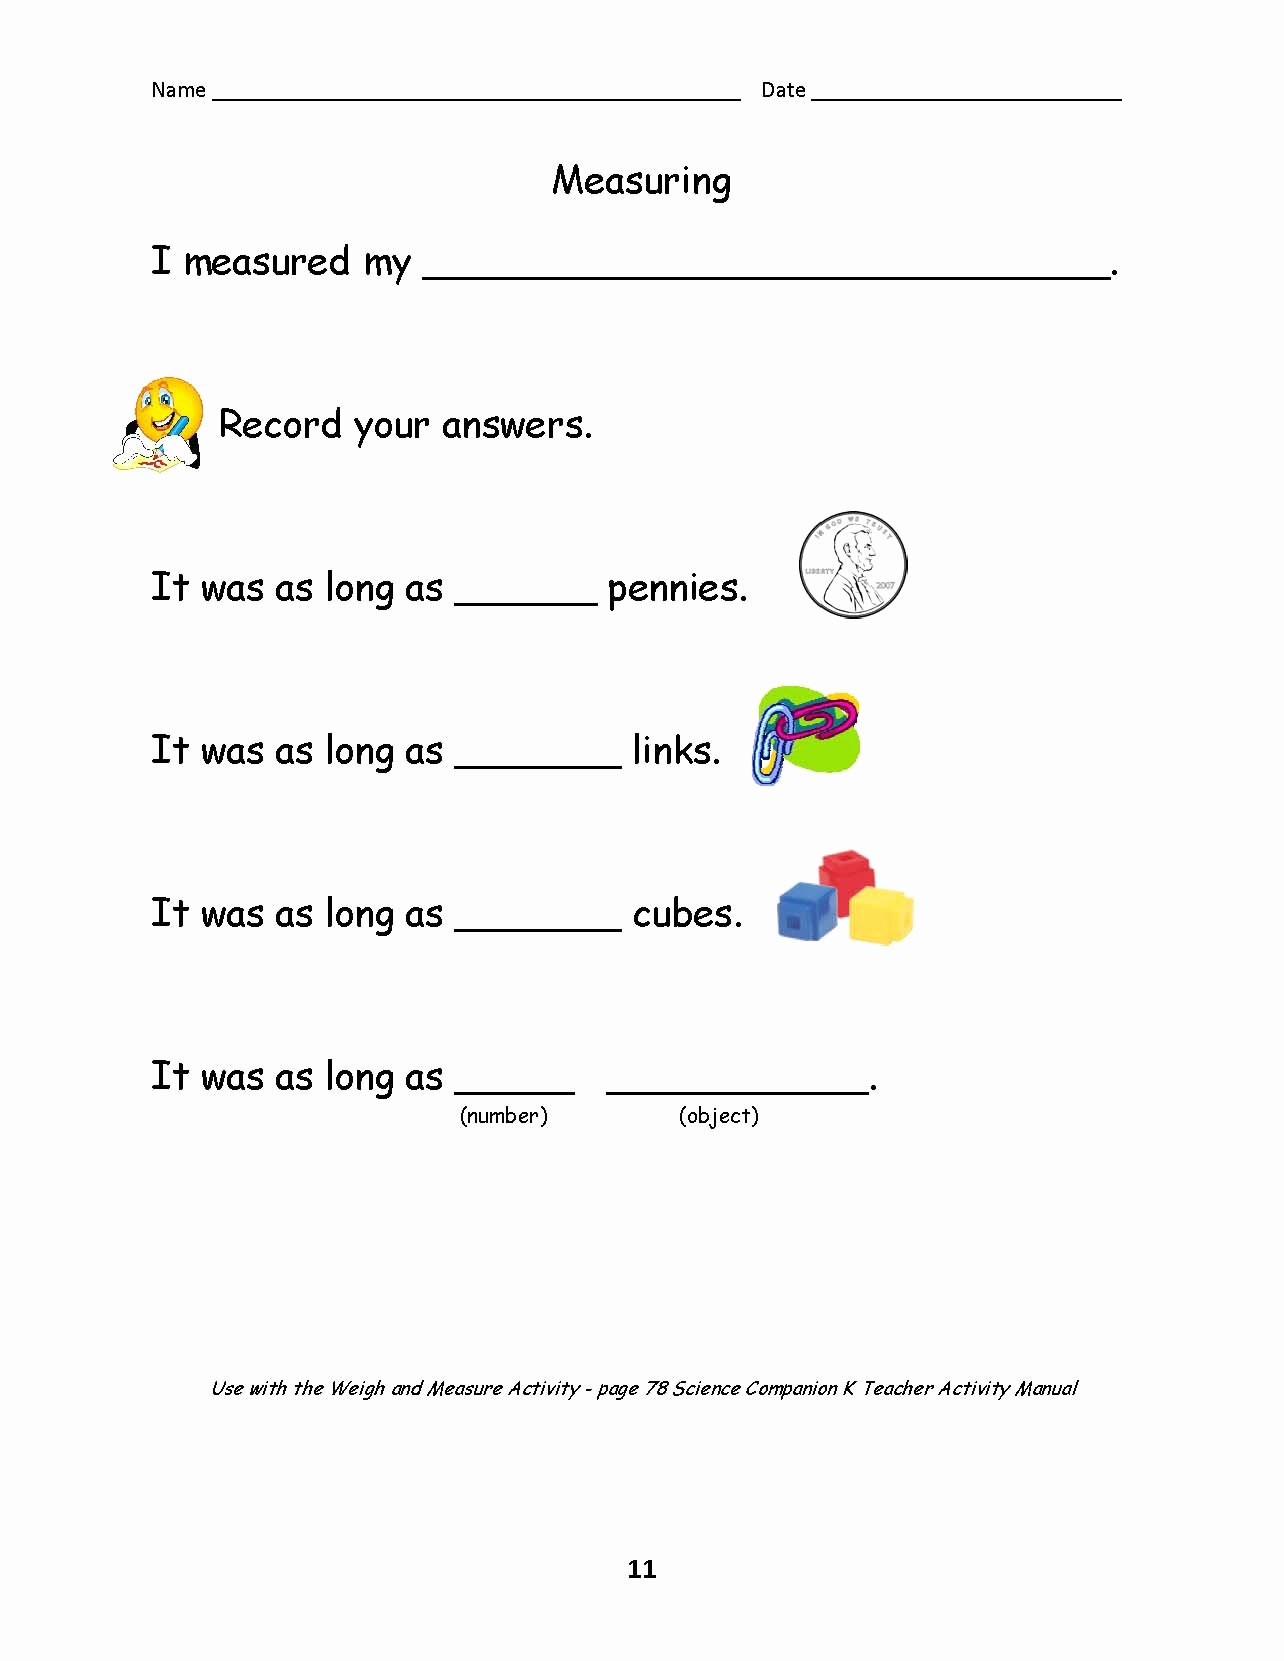 Water Safety Worksheets for Preschoolers Unique Monthly Archives July 2020 Junior Cert Science Worksheets